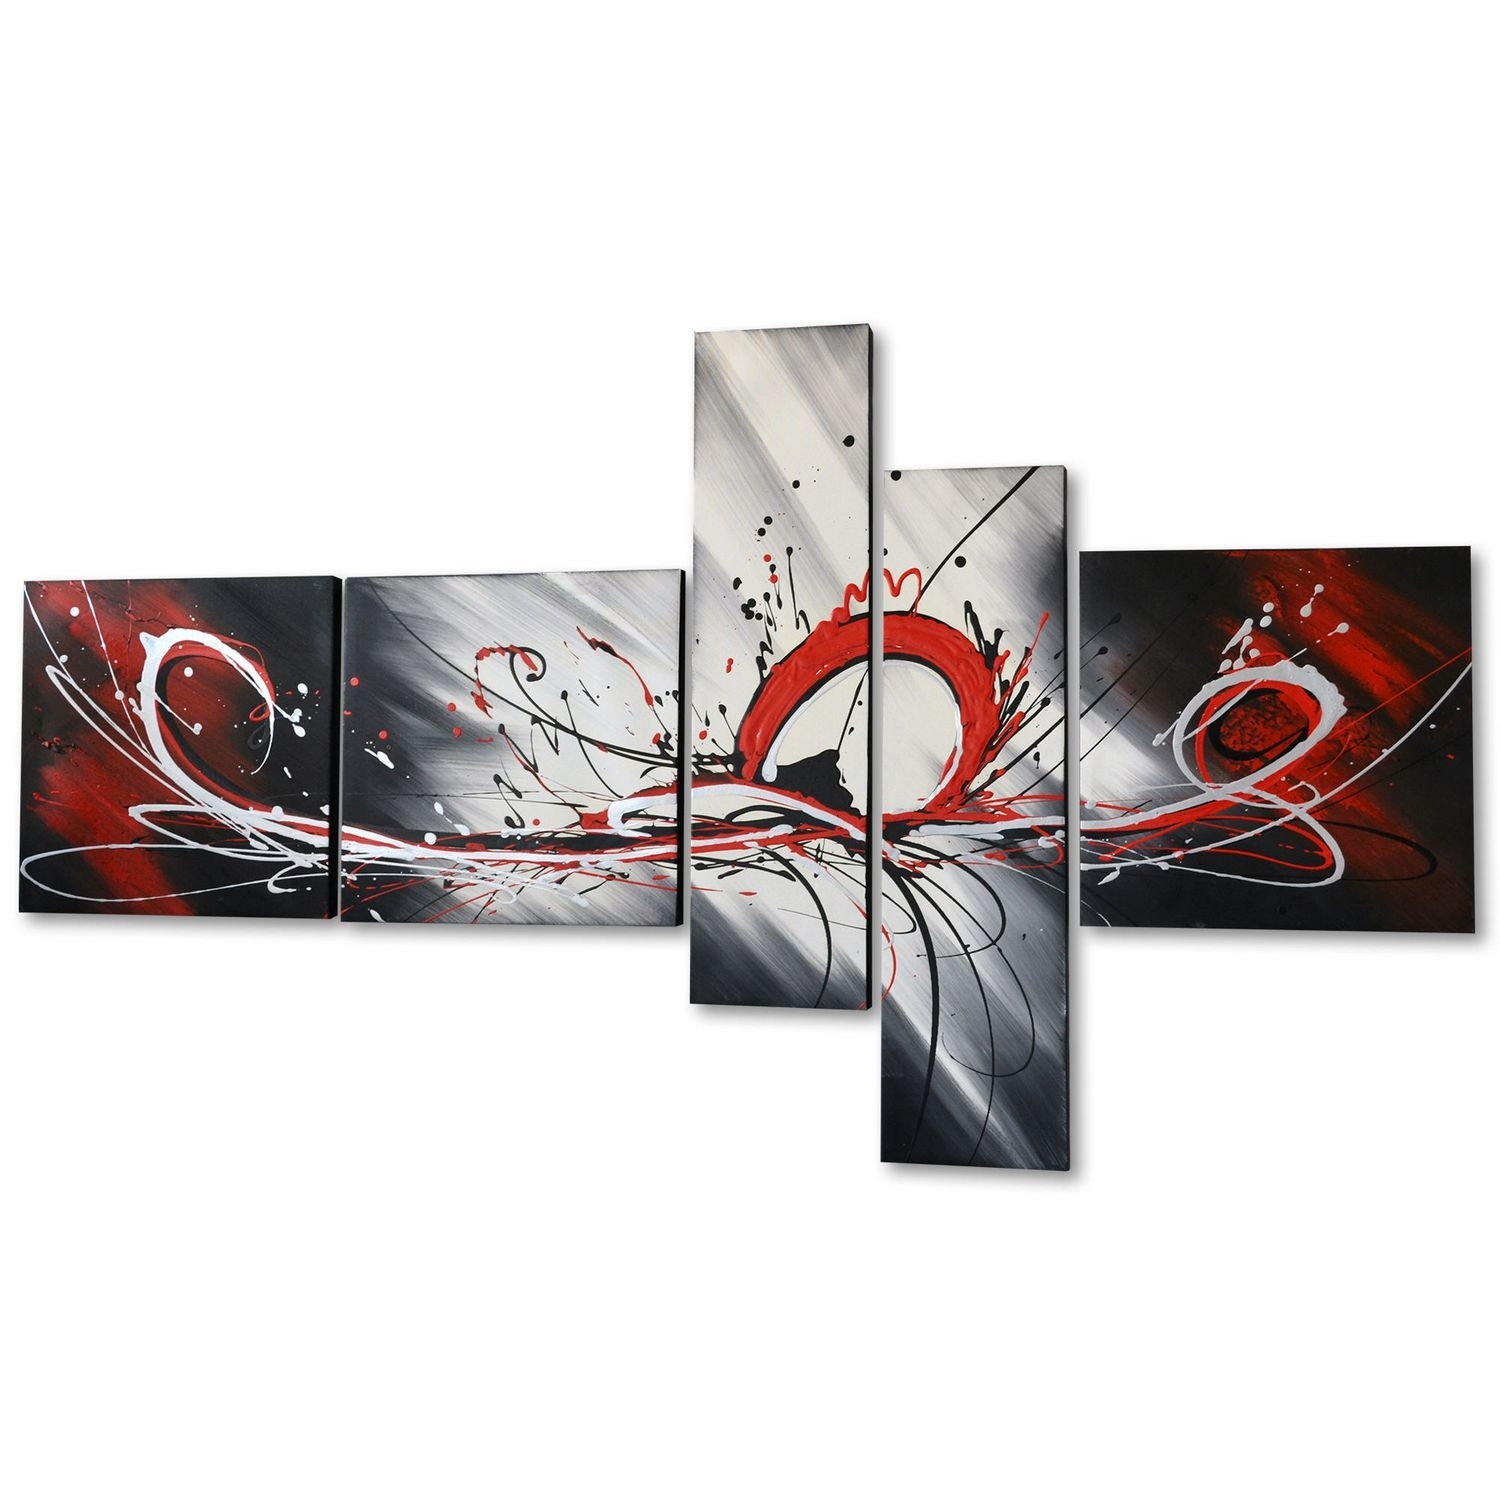 Design Art – Red Splash Hand Painted Textured Oil Painting On For Best And Newest Walmart Wall Art (View 8 of 20)